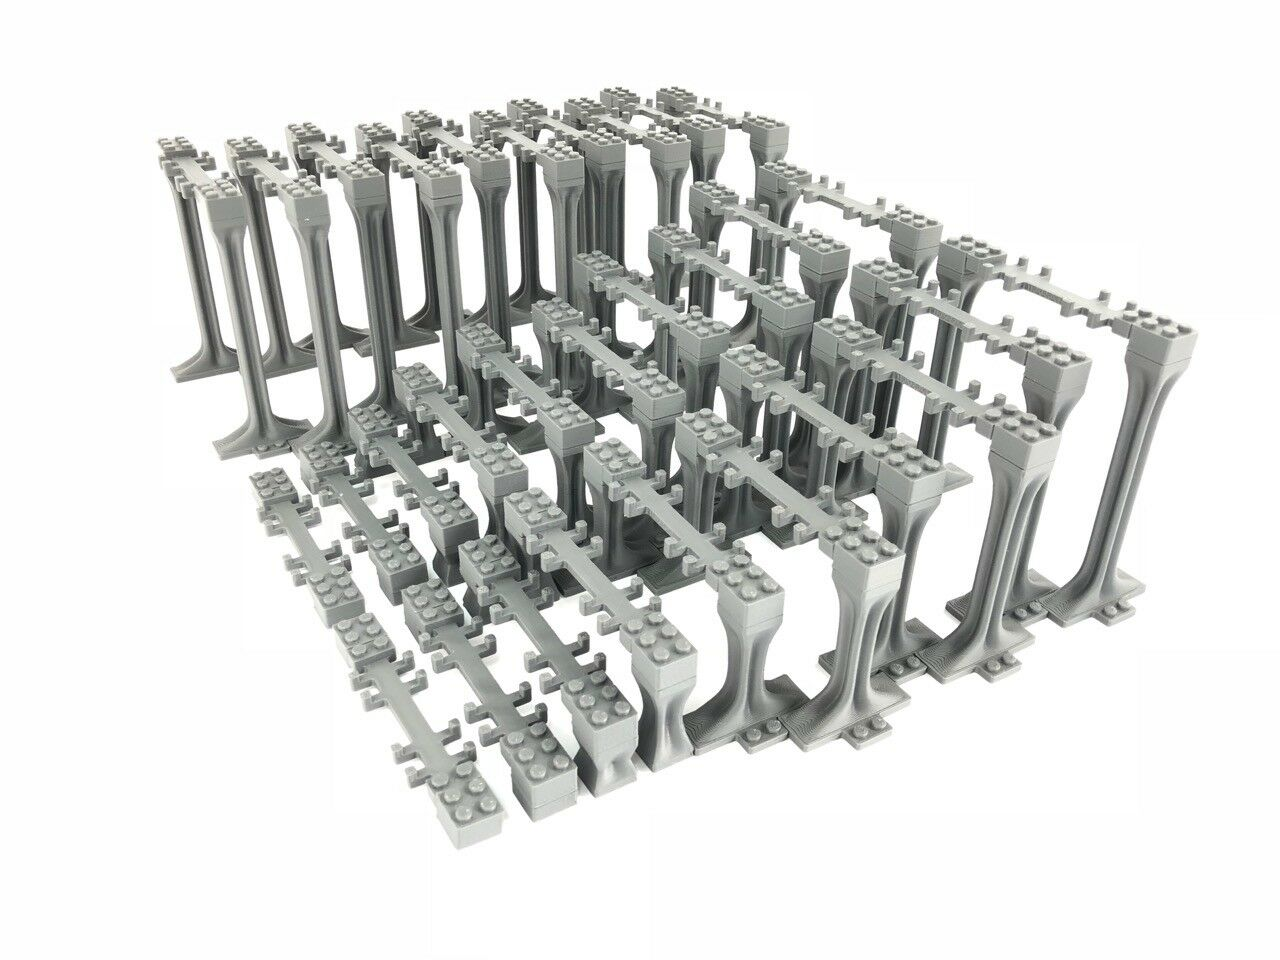 Supports Bundle -2 Incline and 1 1 1 Highest Support Sets compatible with Lego Train 0c7490